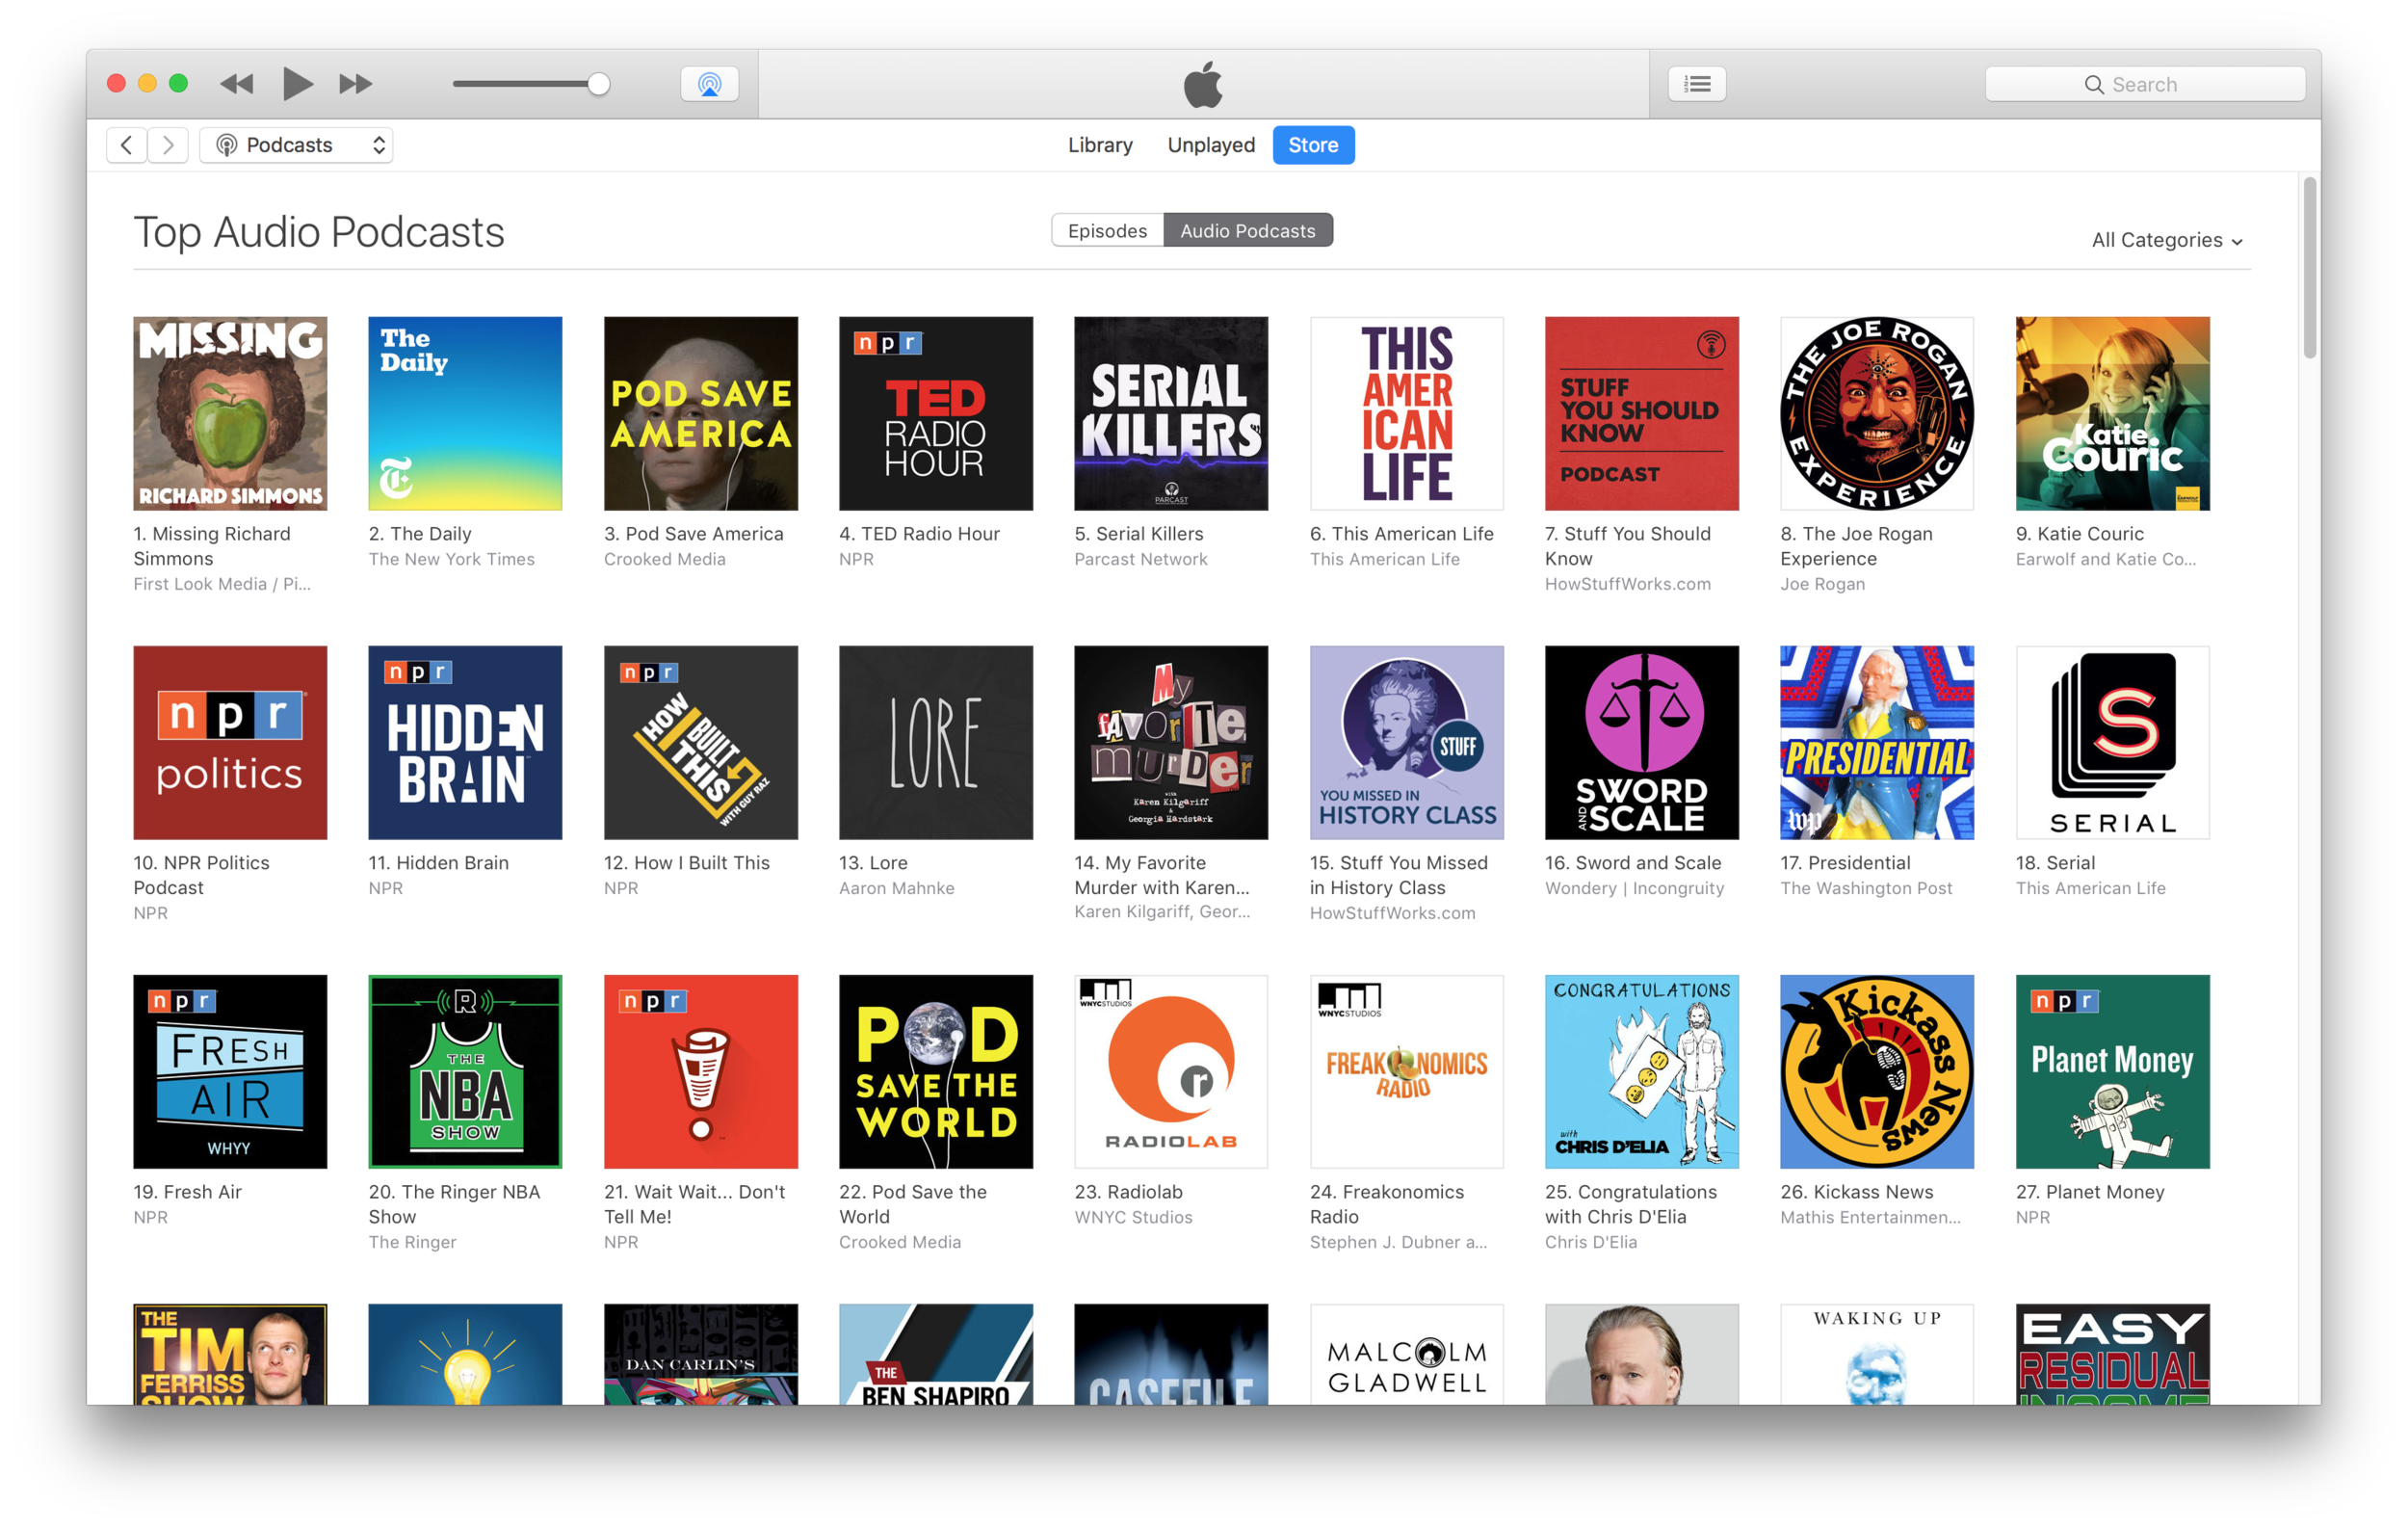 #1 Podcast on iTunes during each week's new release